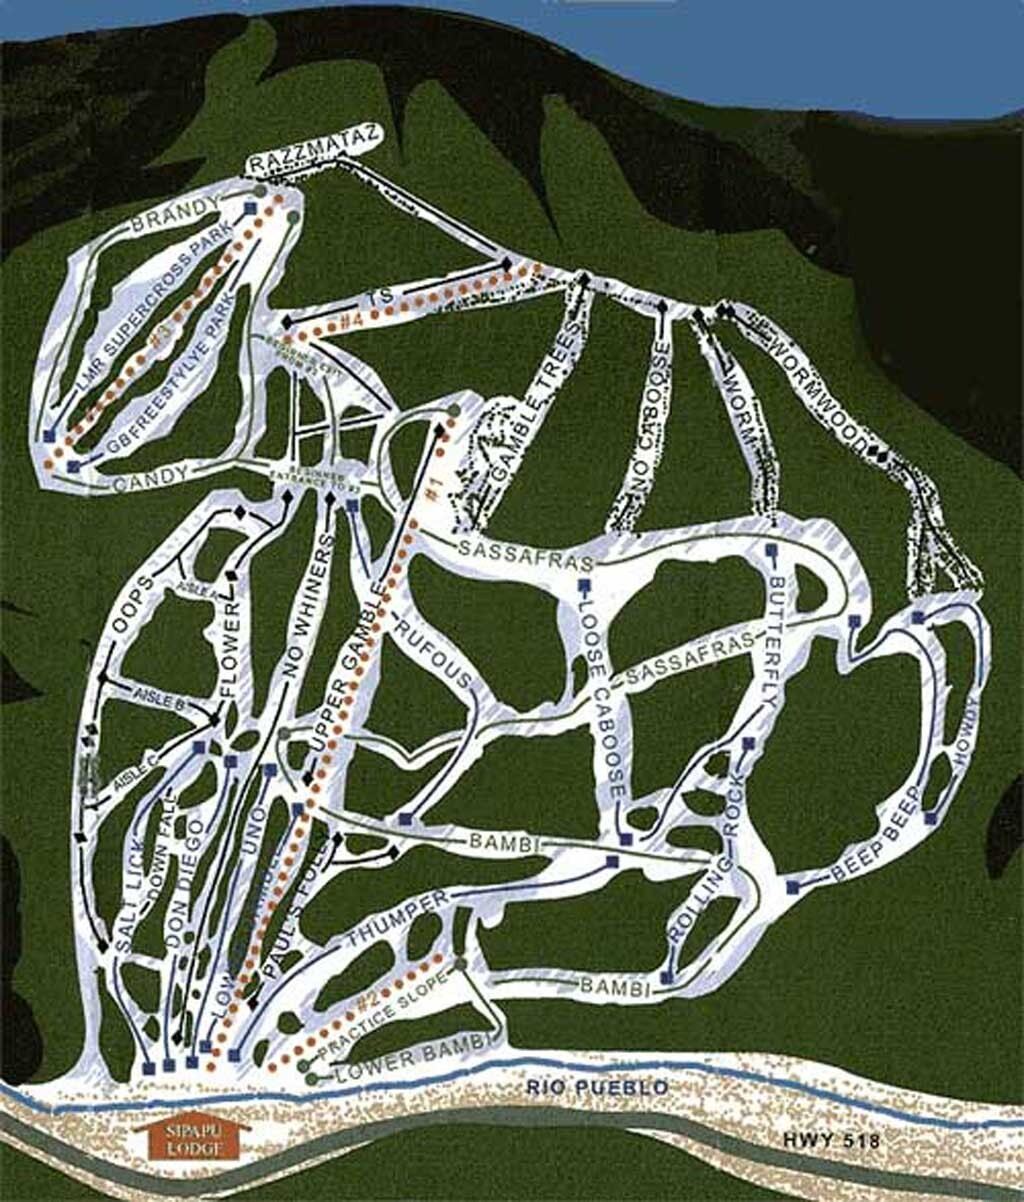 Sipapu Ski And Summer Resort Piste Map Trail Map